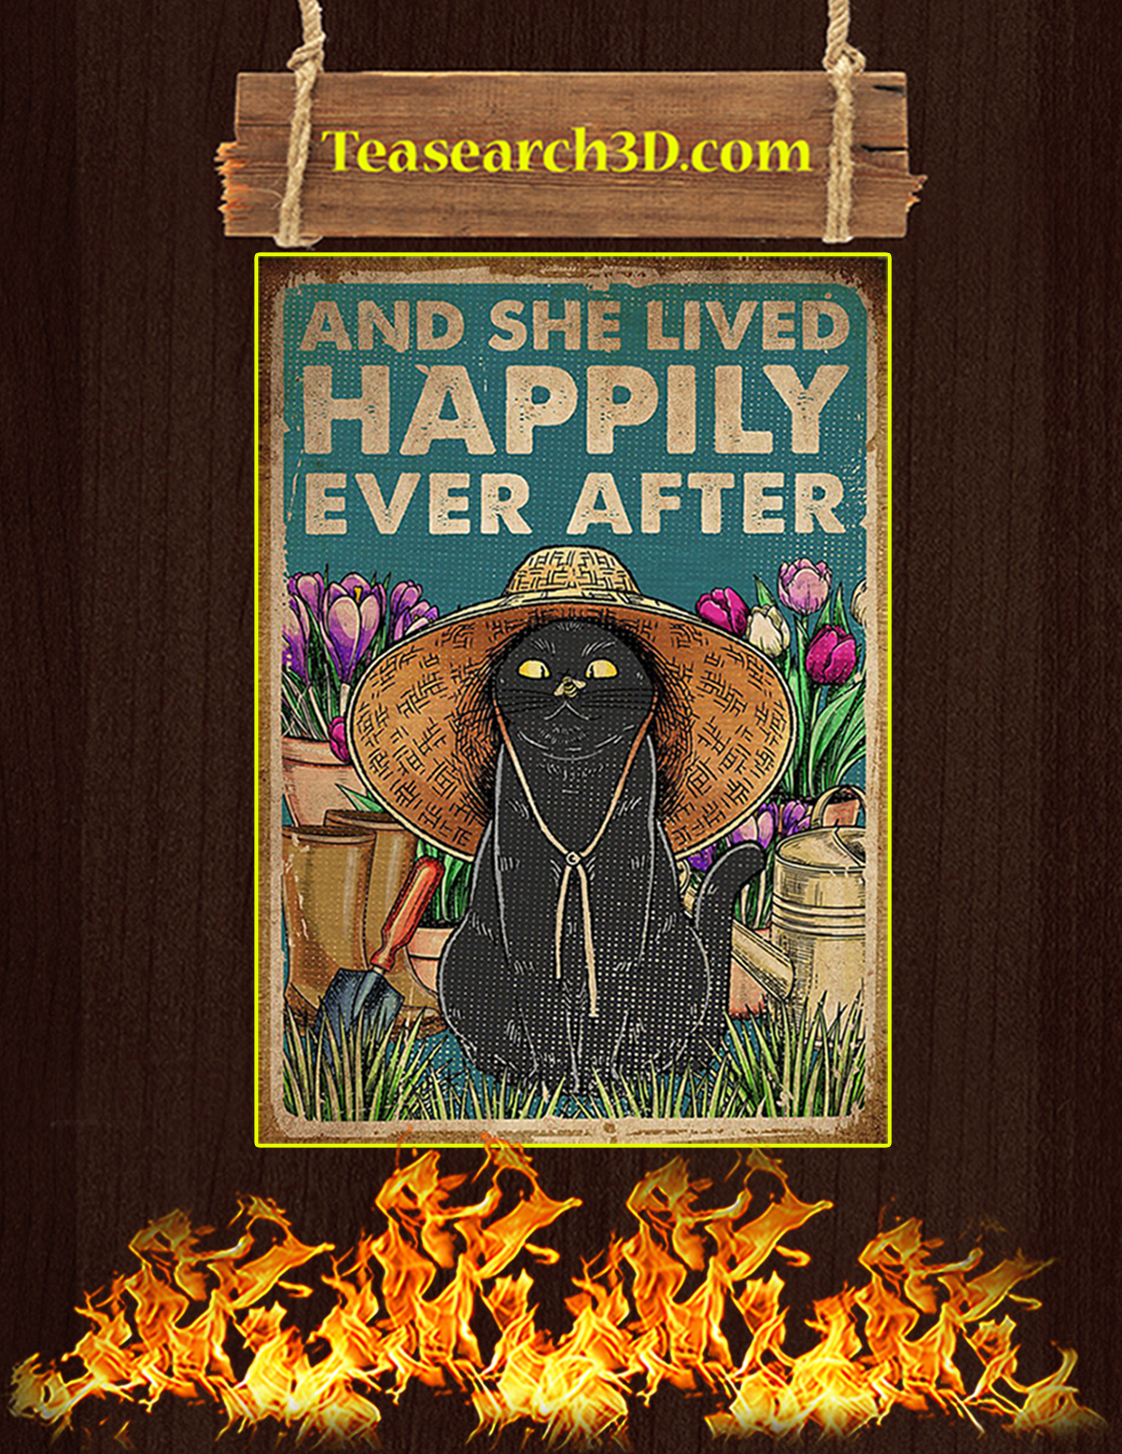 Cat gardening and she lived happily ever after poster A3